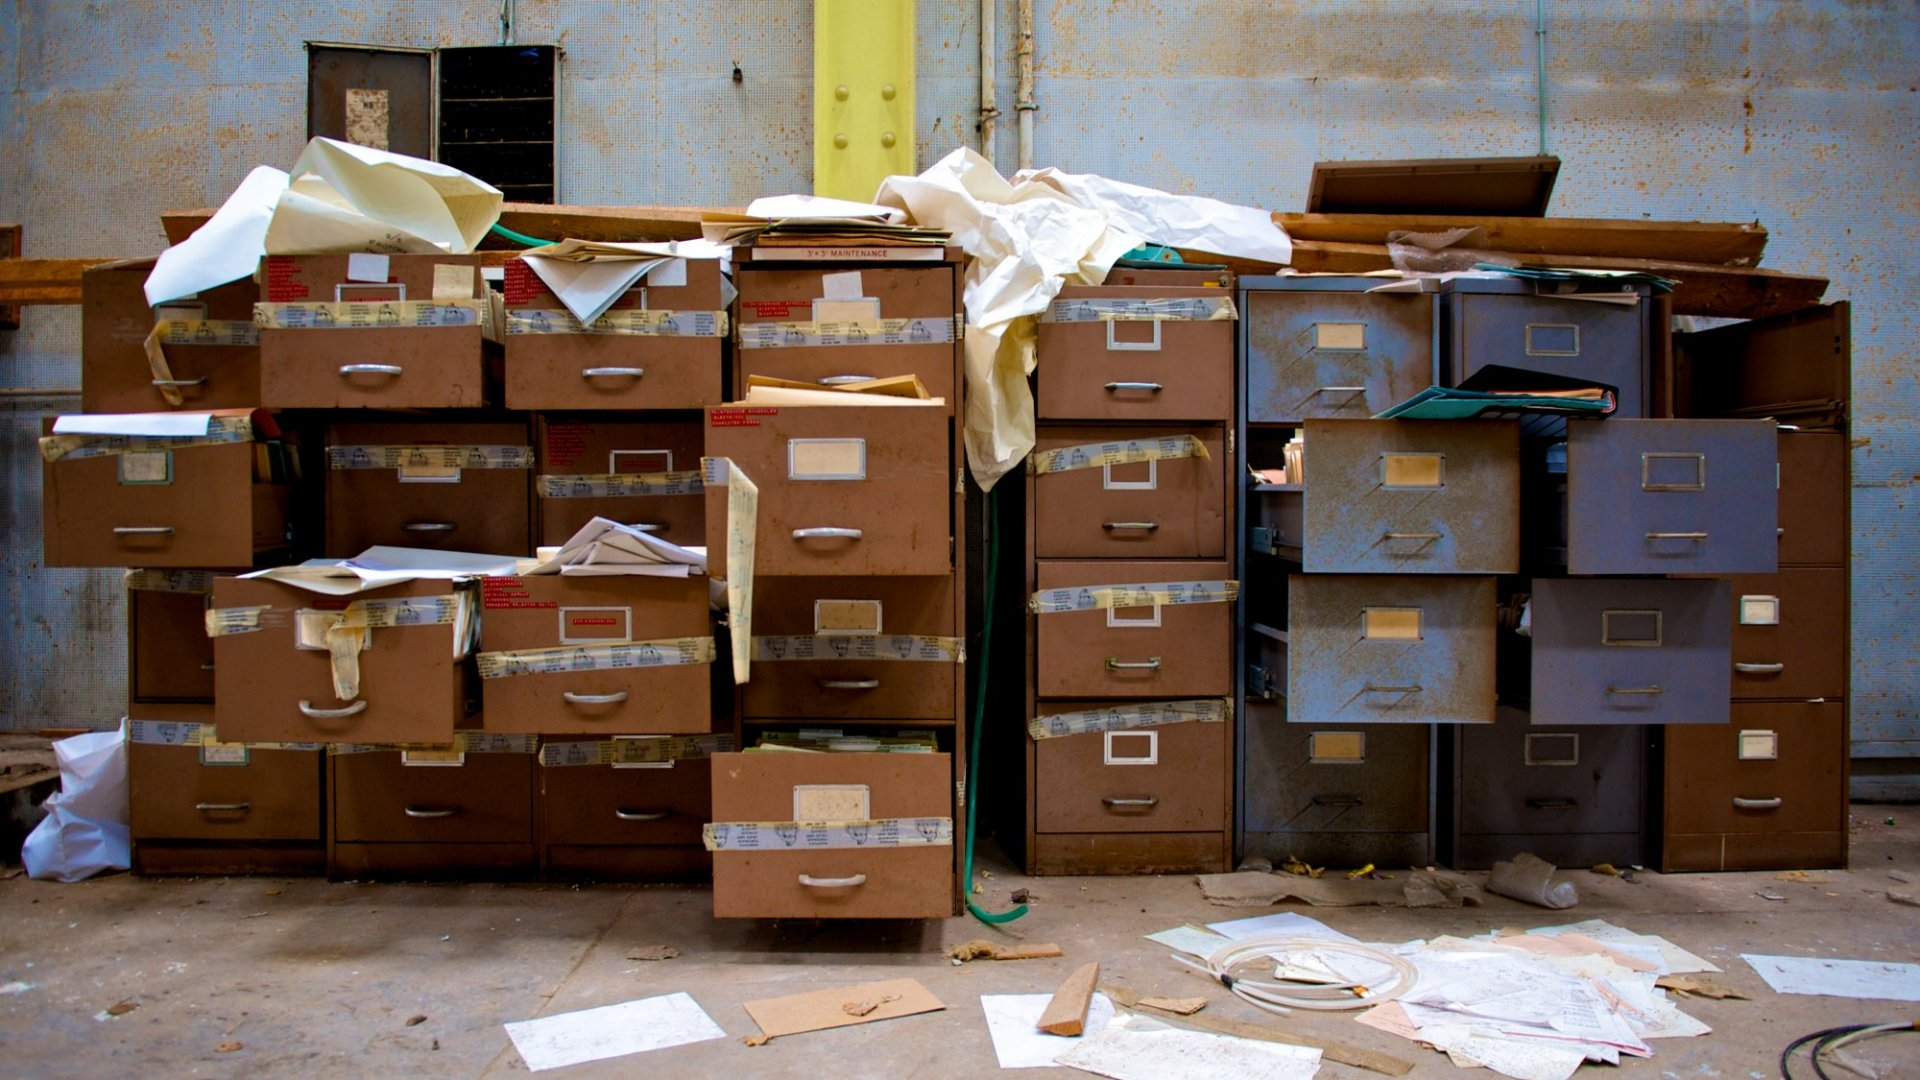 In business we can't afford to be disorganized